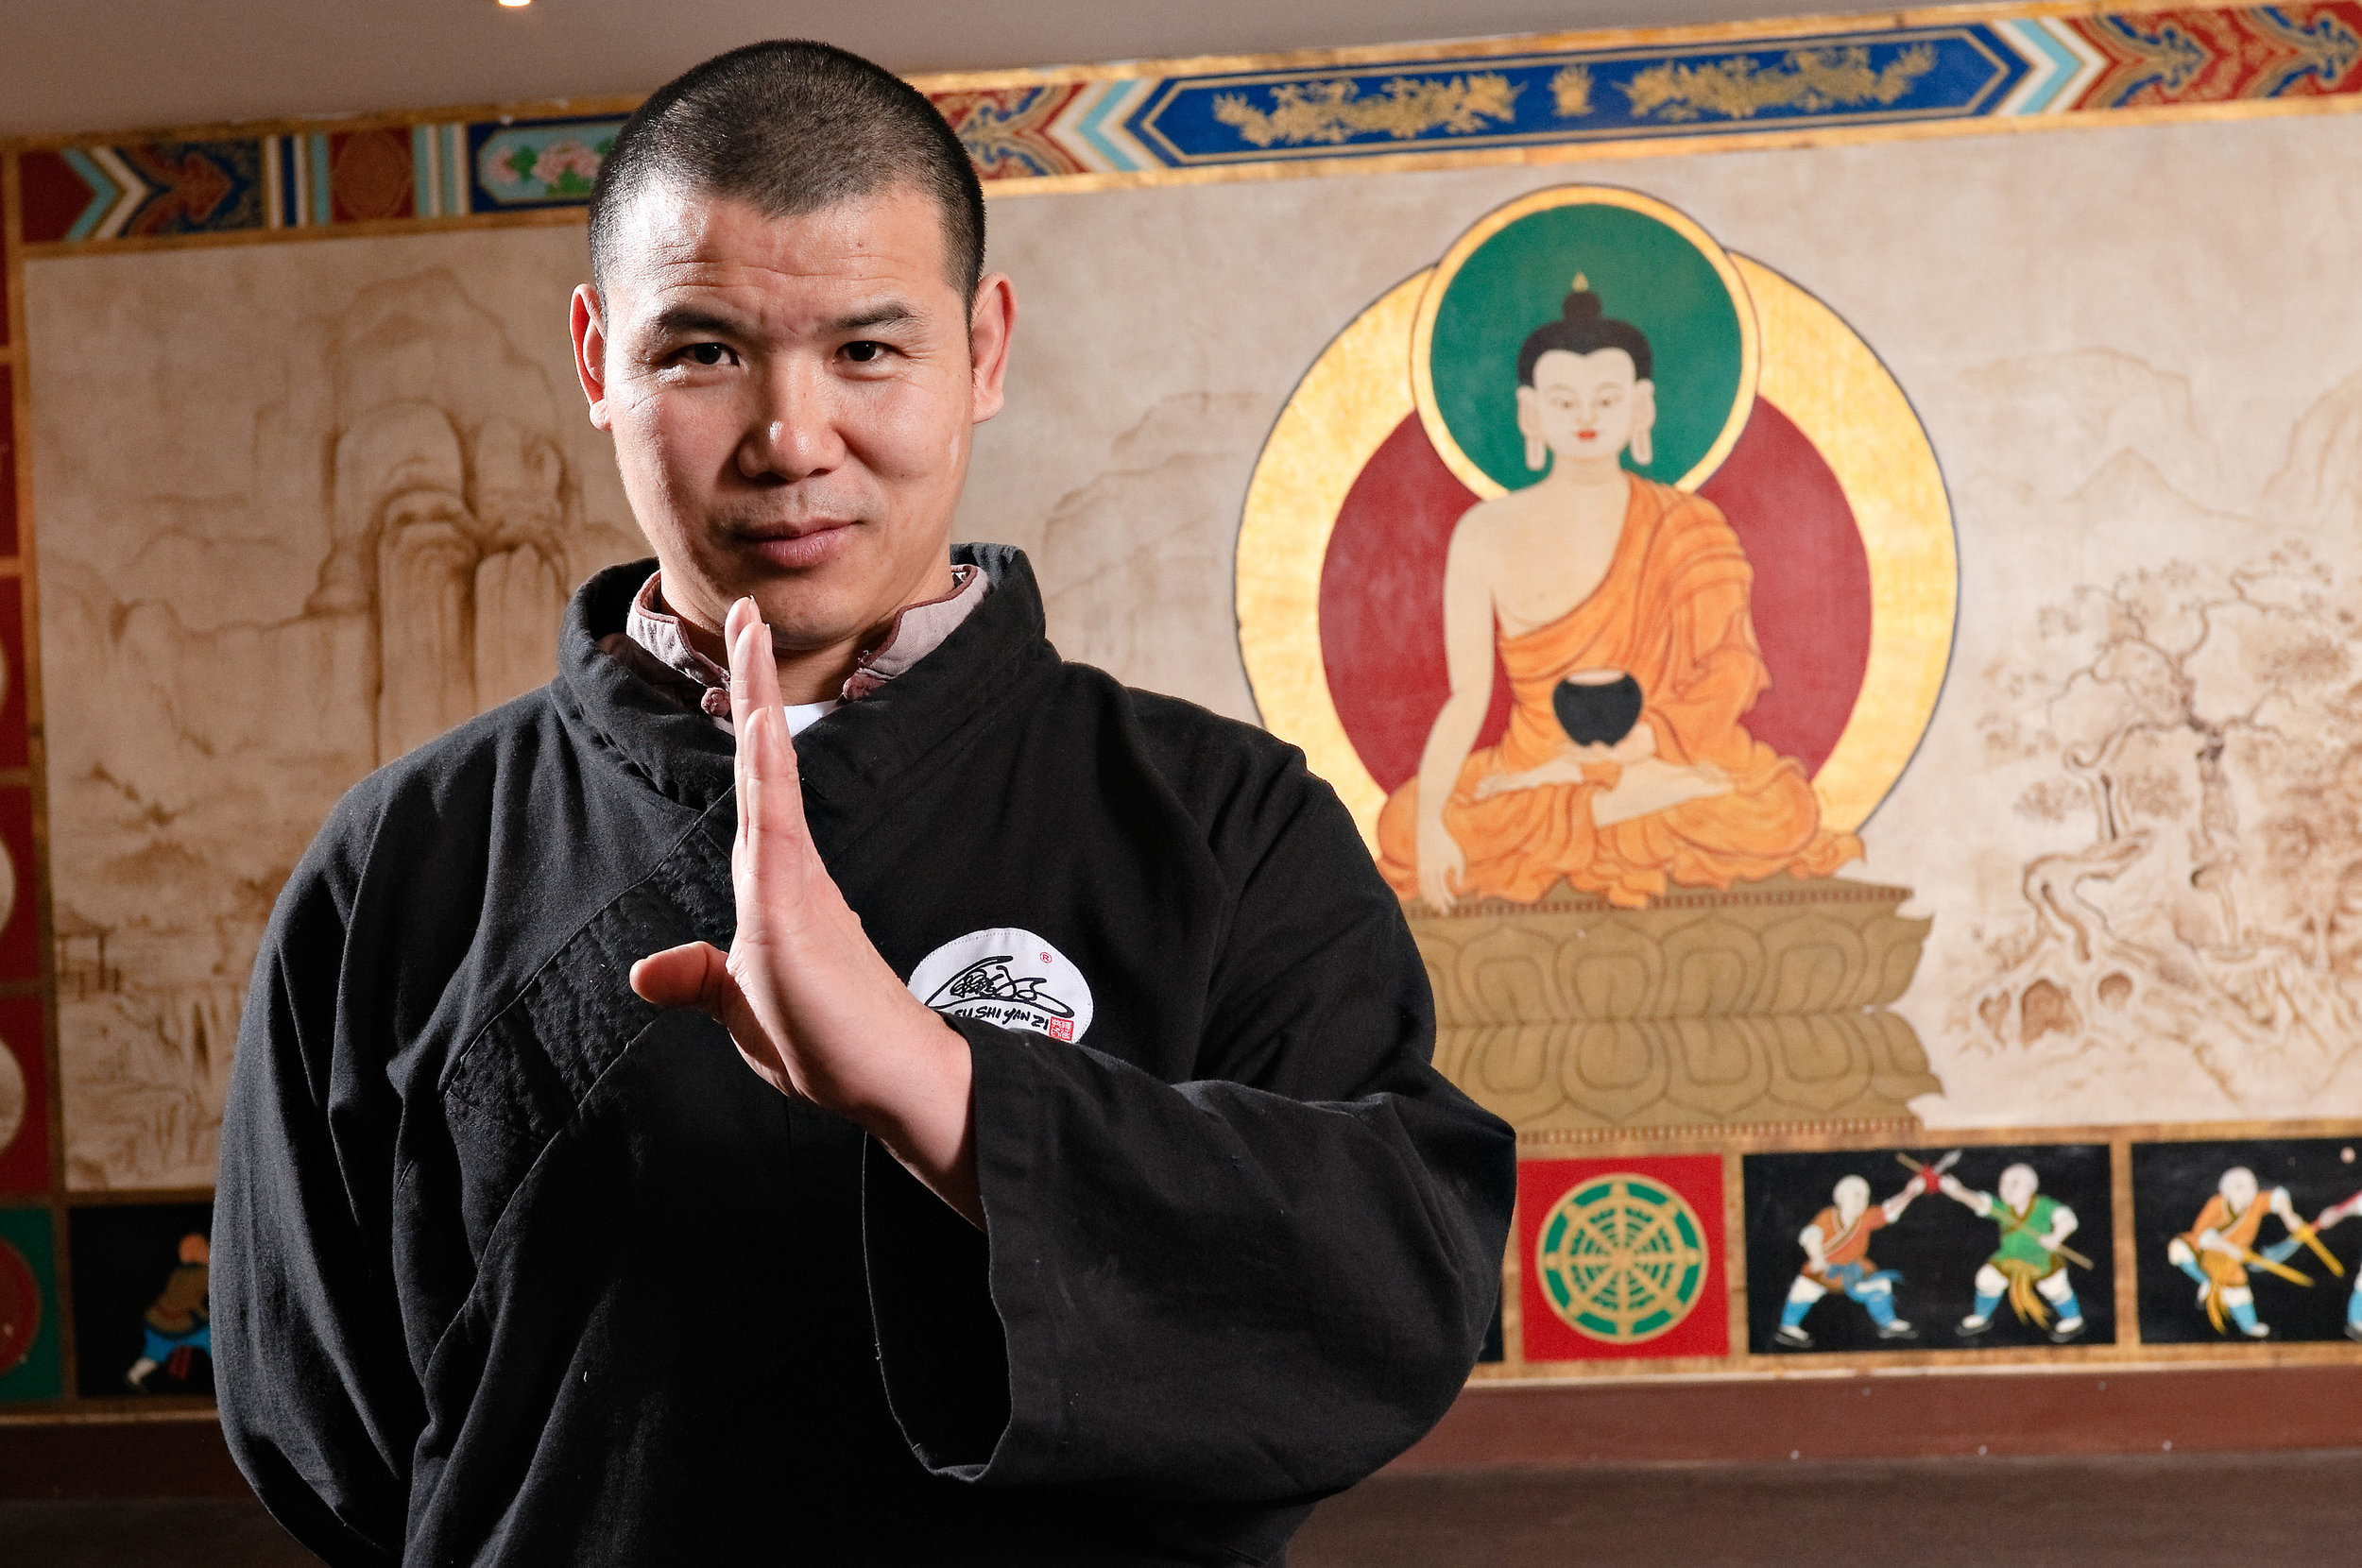 shaolin temple teacher Shifu yanzi